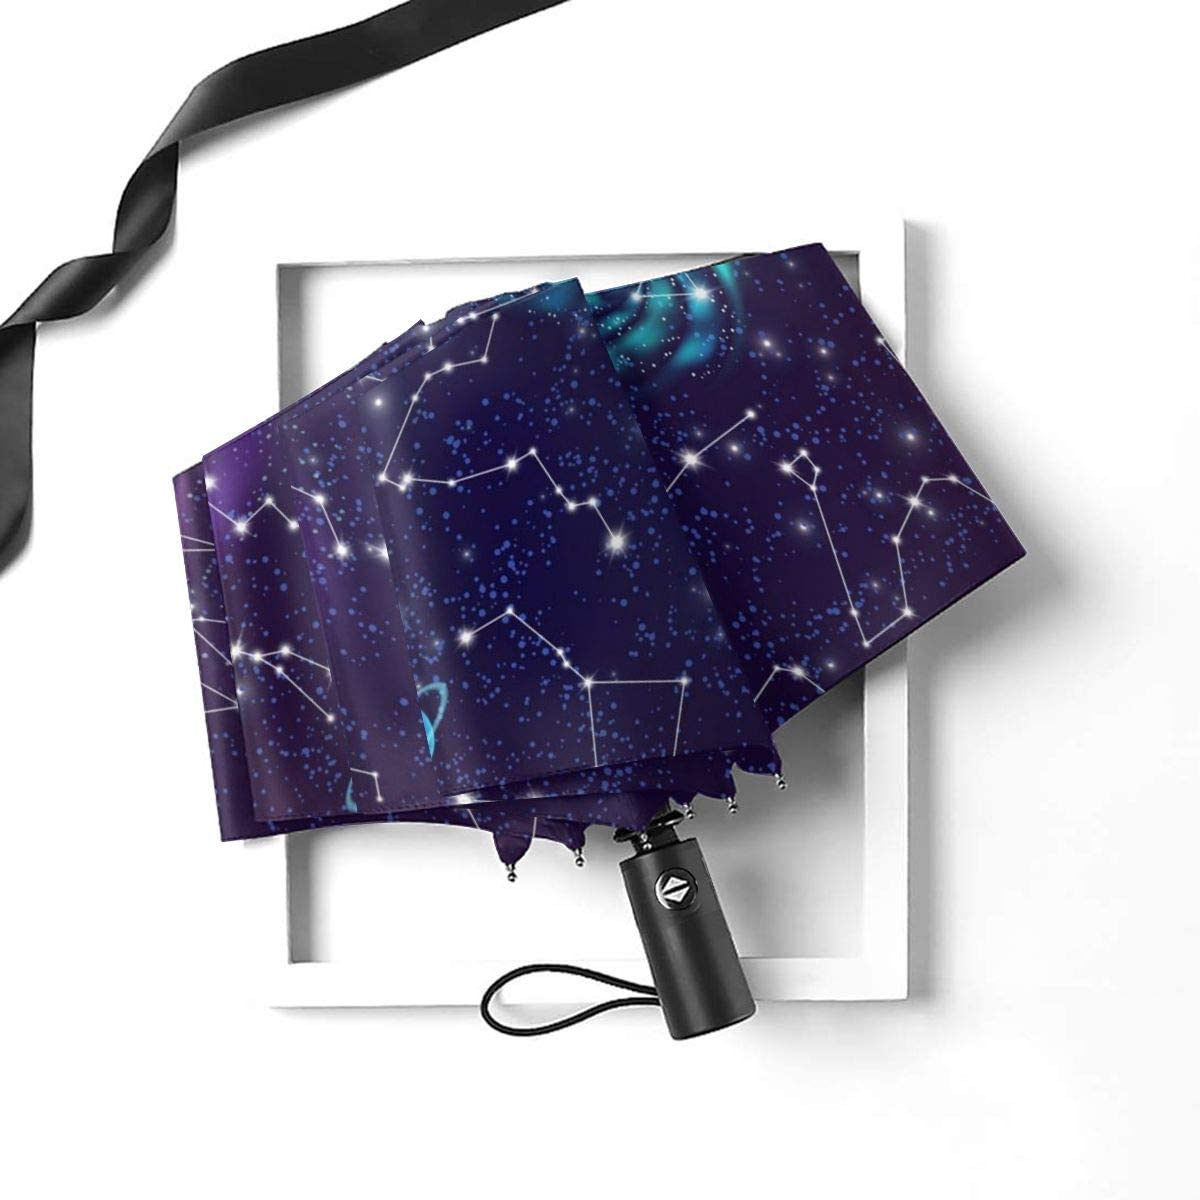 Space Constellation Purple Background Compact Travel Umbrella Windproof Reinforced Canopy 8 Ribs Umbrella Auto Open And Close Button Customized